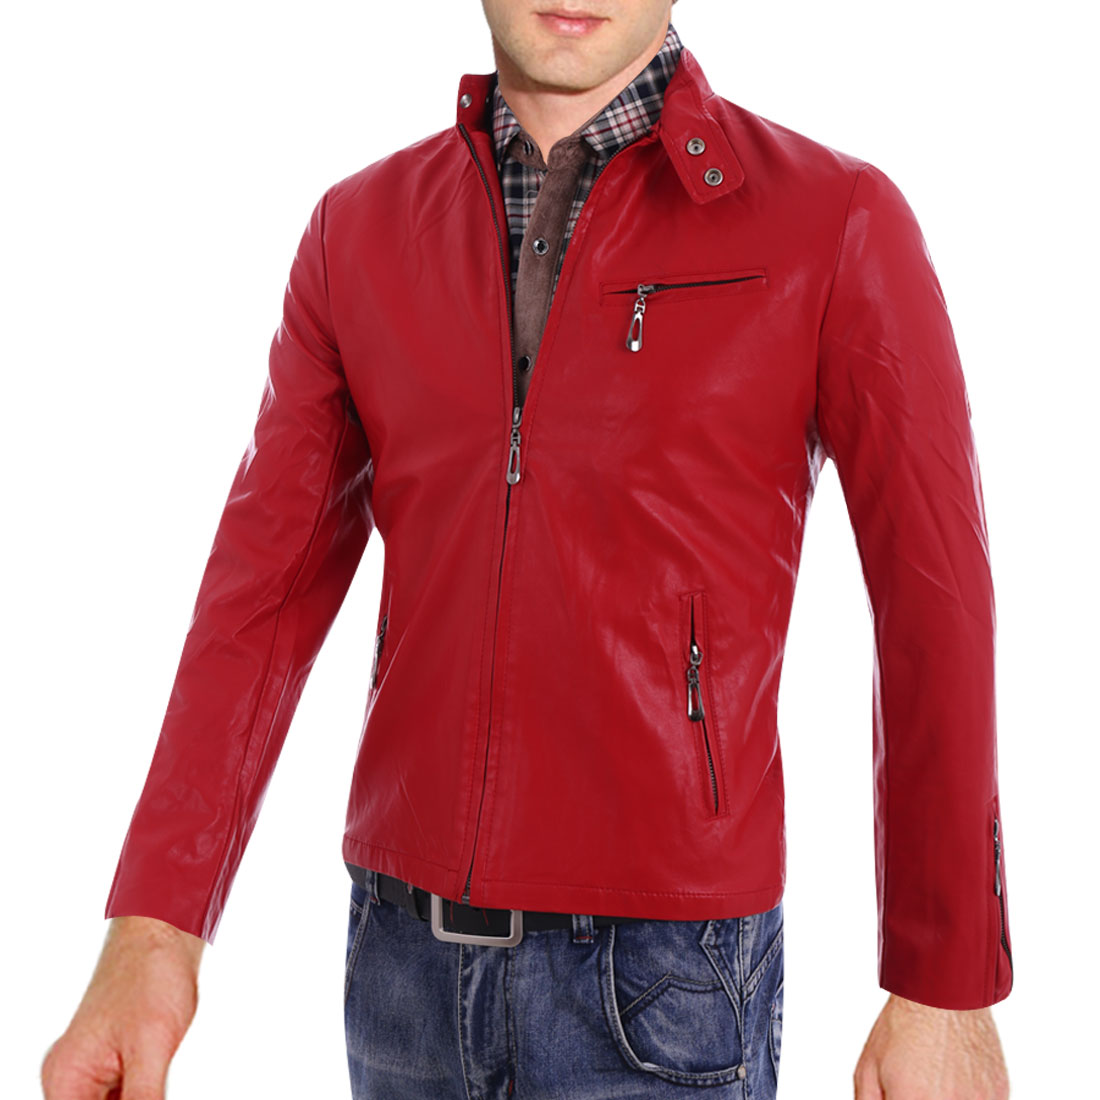 Man Stylish Zip-Up Front 3 Pockets Design Red Faux Leather Jacket S